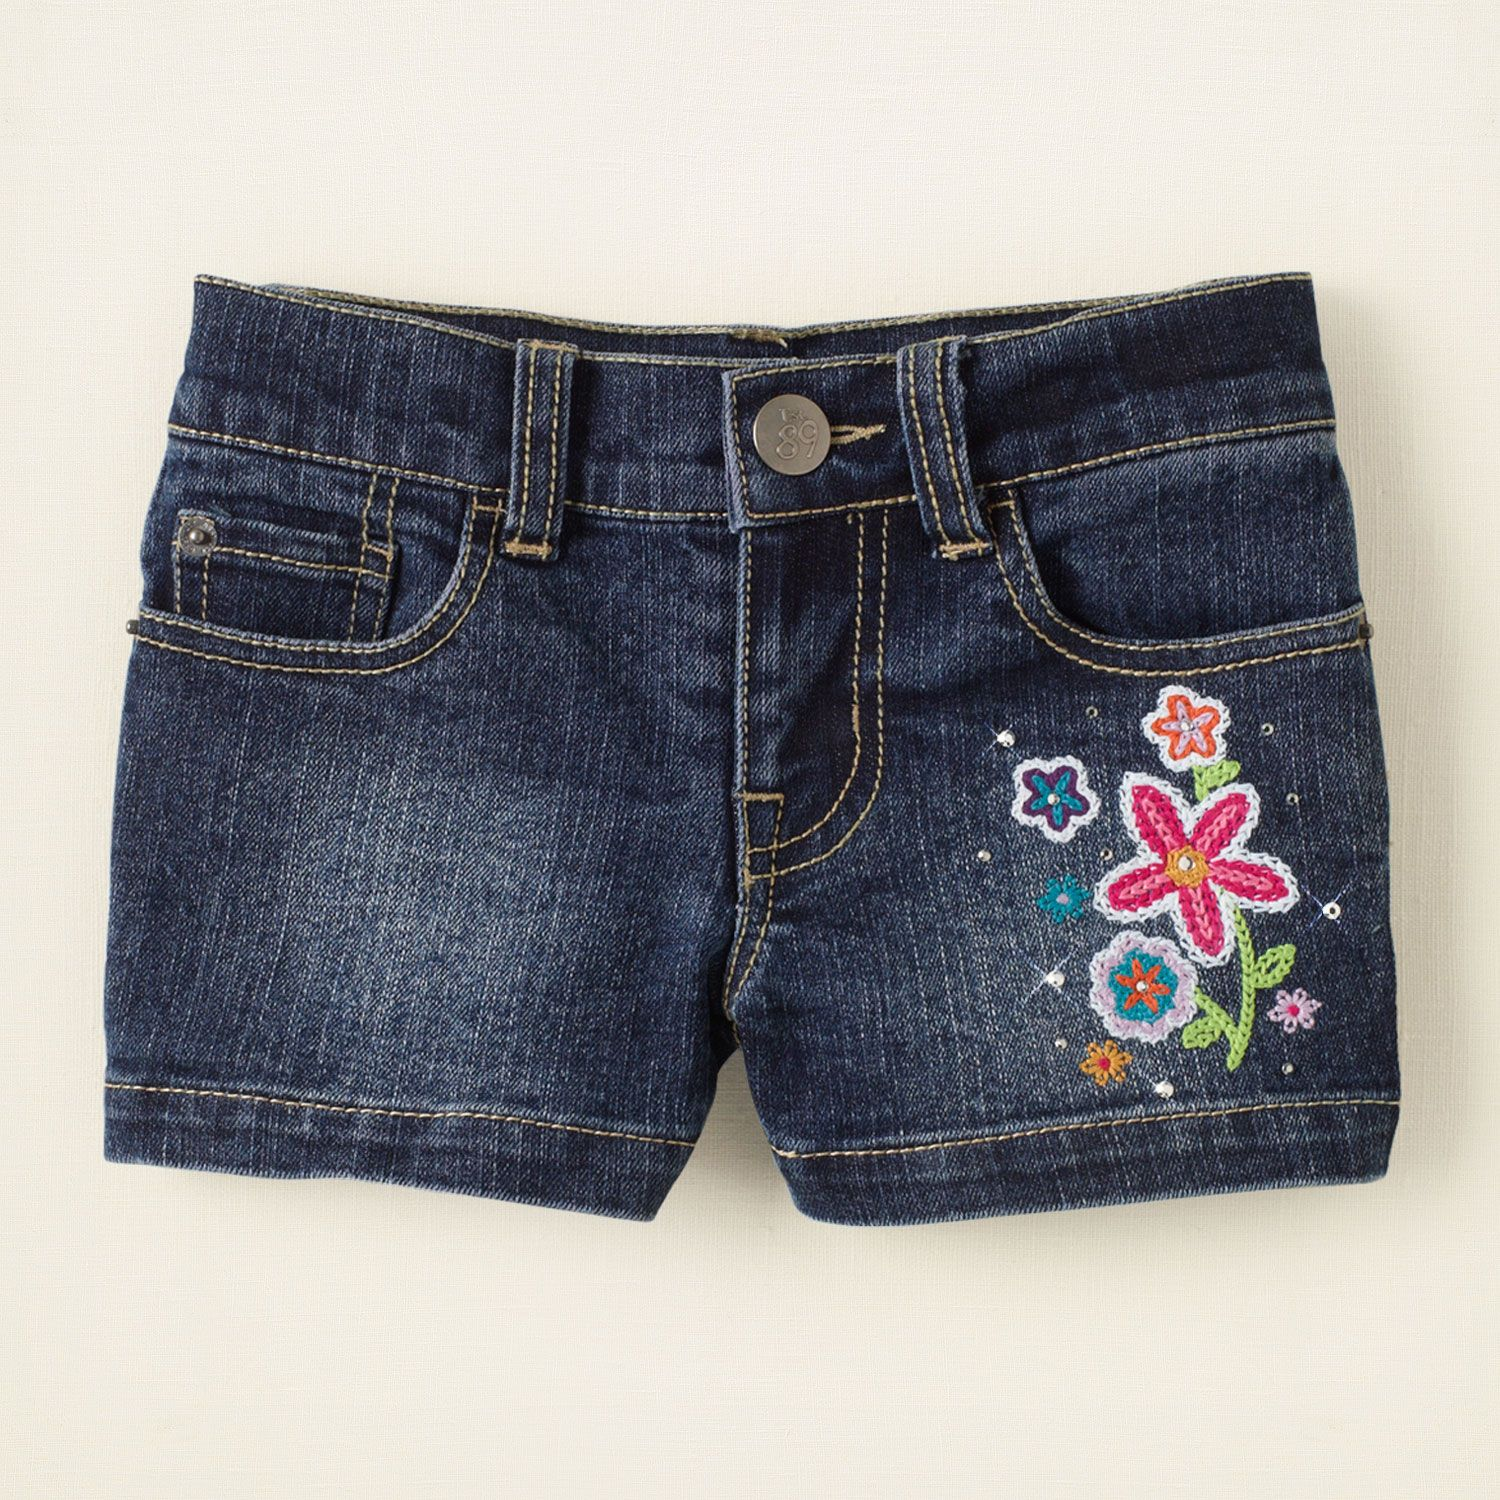 sequin embroidered denim shorts